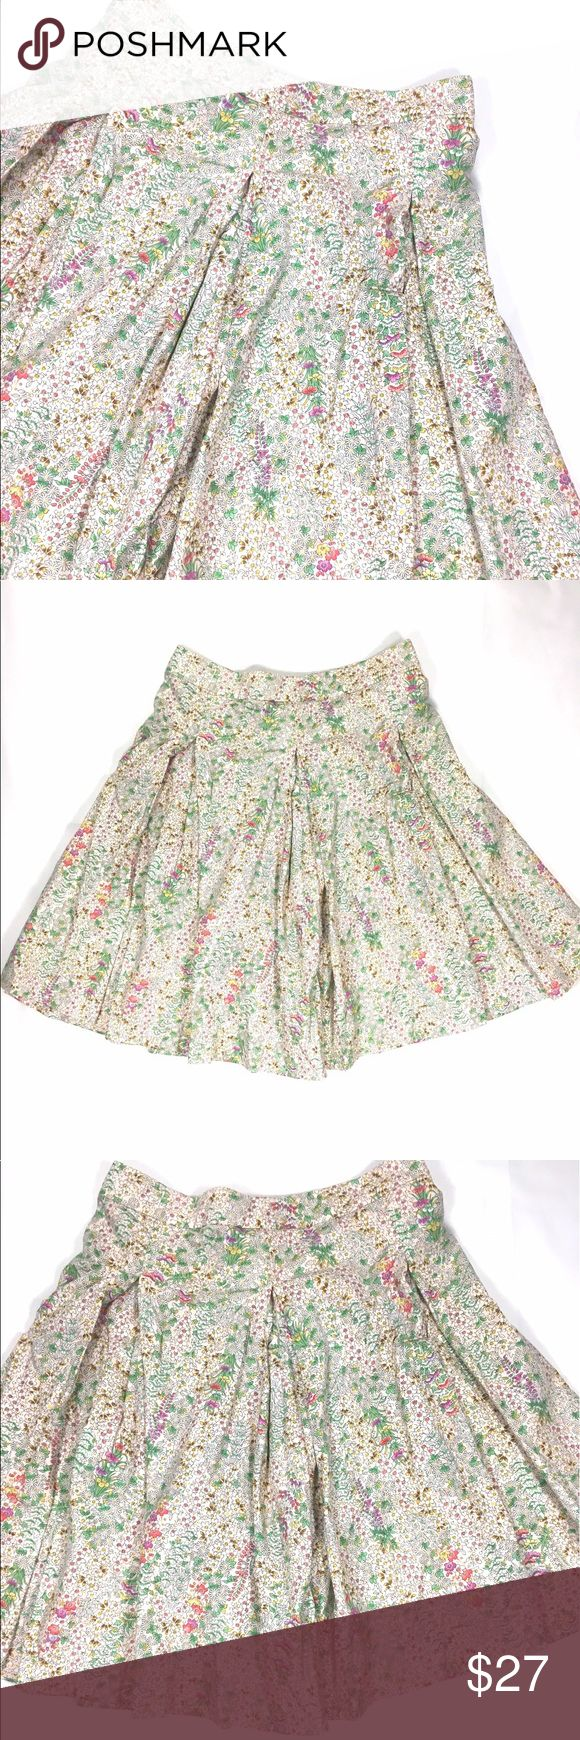 [French Connection] Floral Skirt Size 4 Creme background with purple, pink, yellow, white flowers and green leaves Flowy Zipper on Back 100% Cotton Approx Measurements: Top Hem to Bottom Hem 21in and Waist 14.5 French Connection Skirts Midi